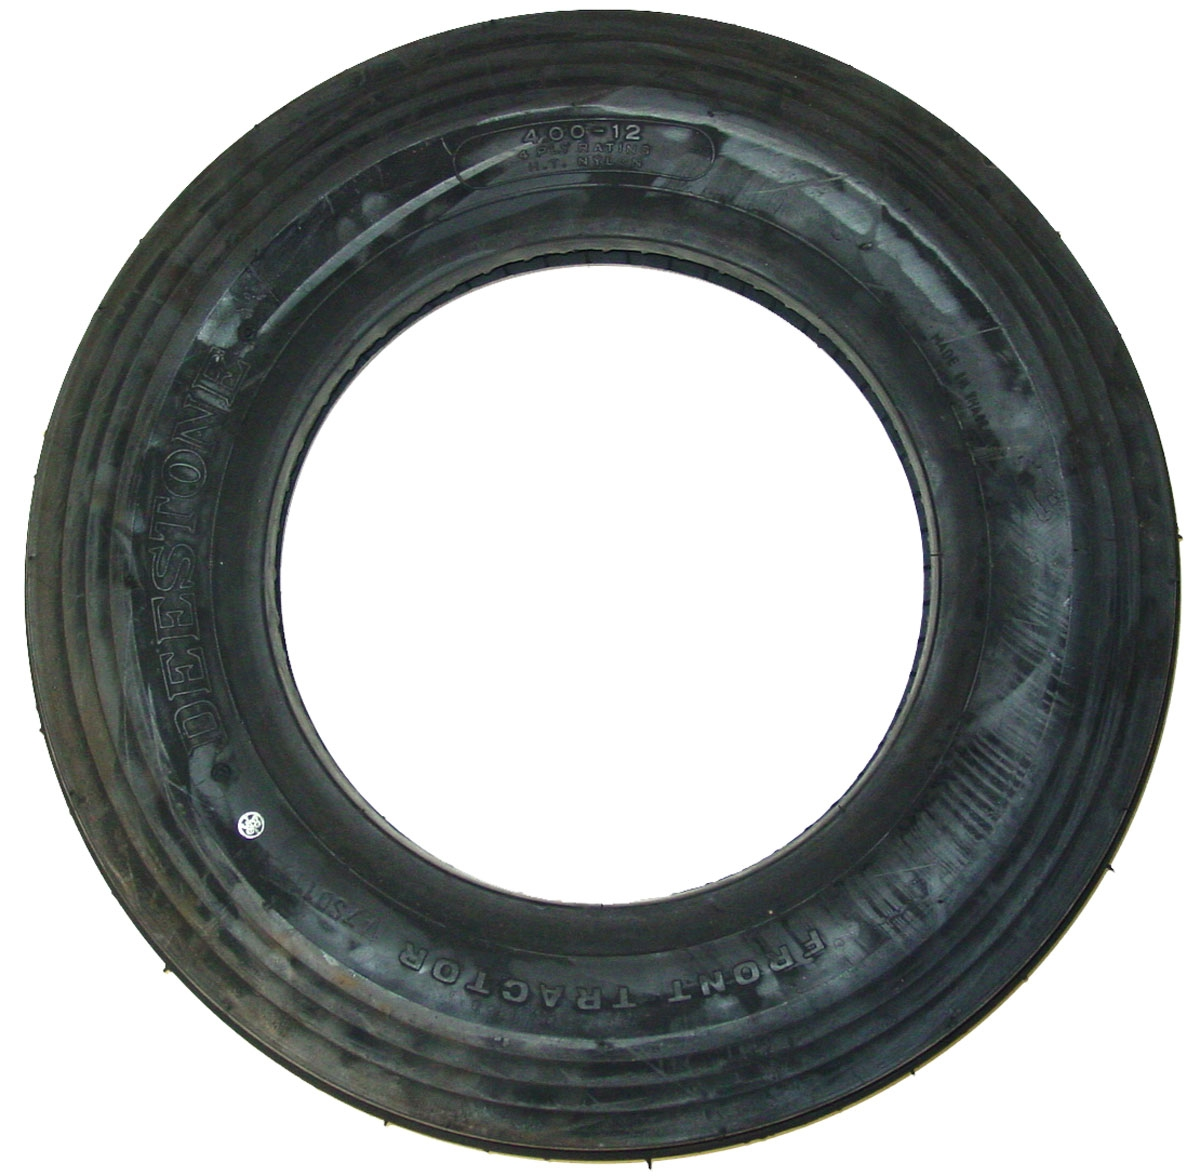 FRONT TIRE 4.00/4.80 - 12